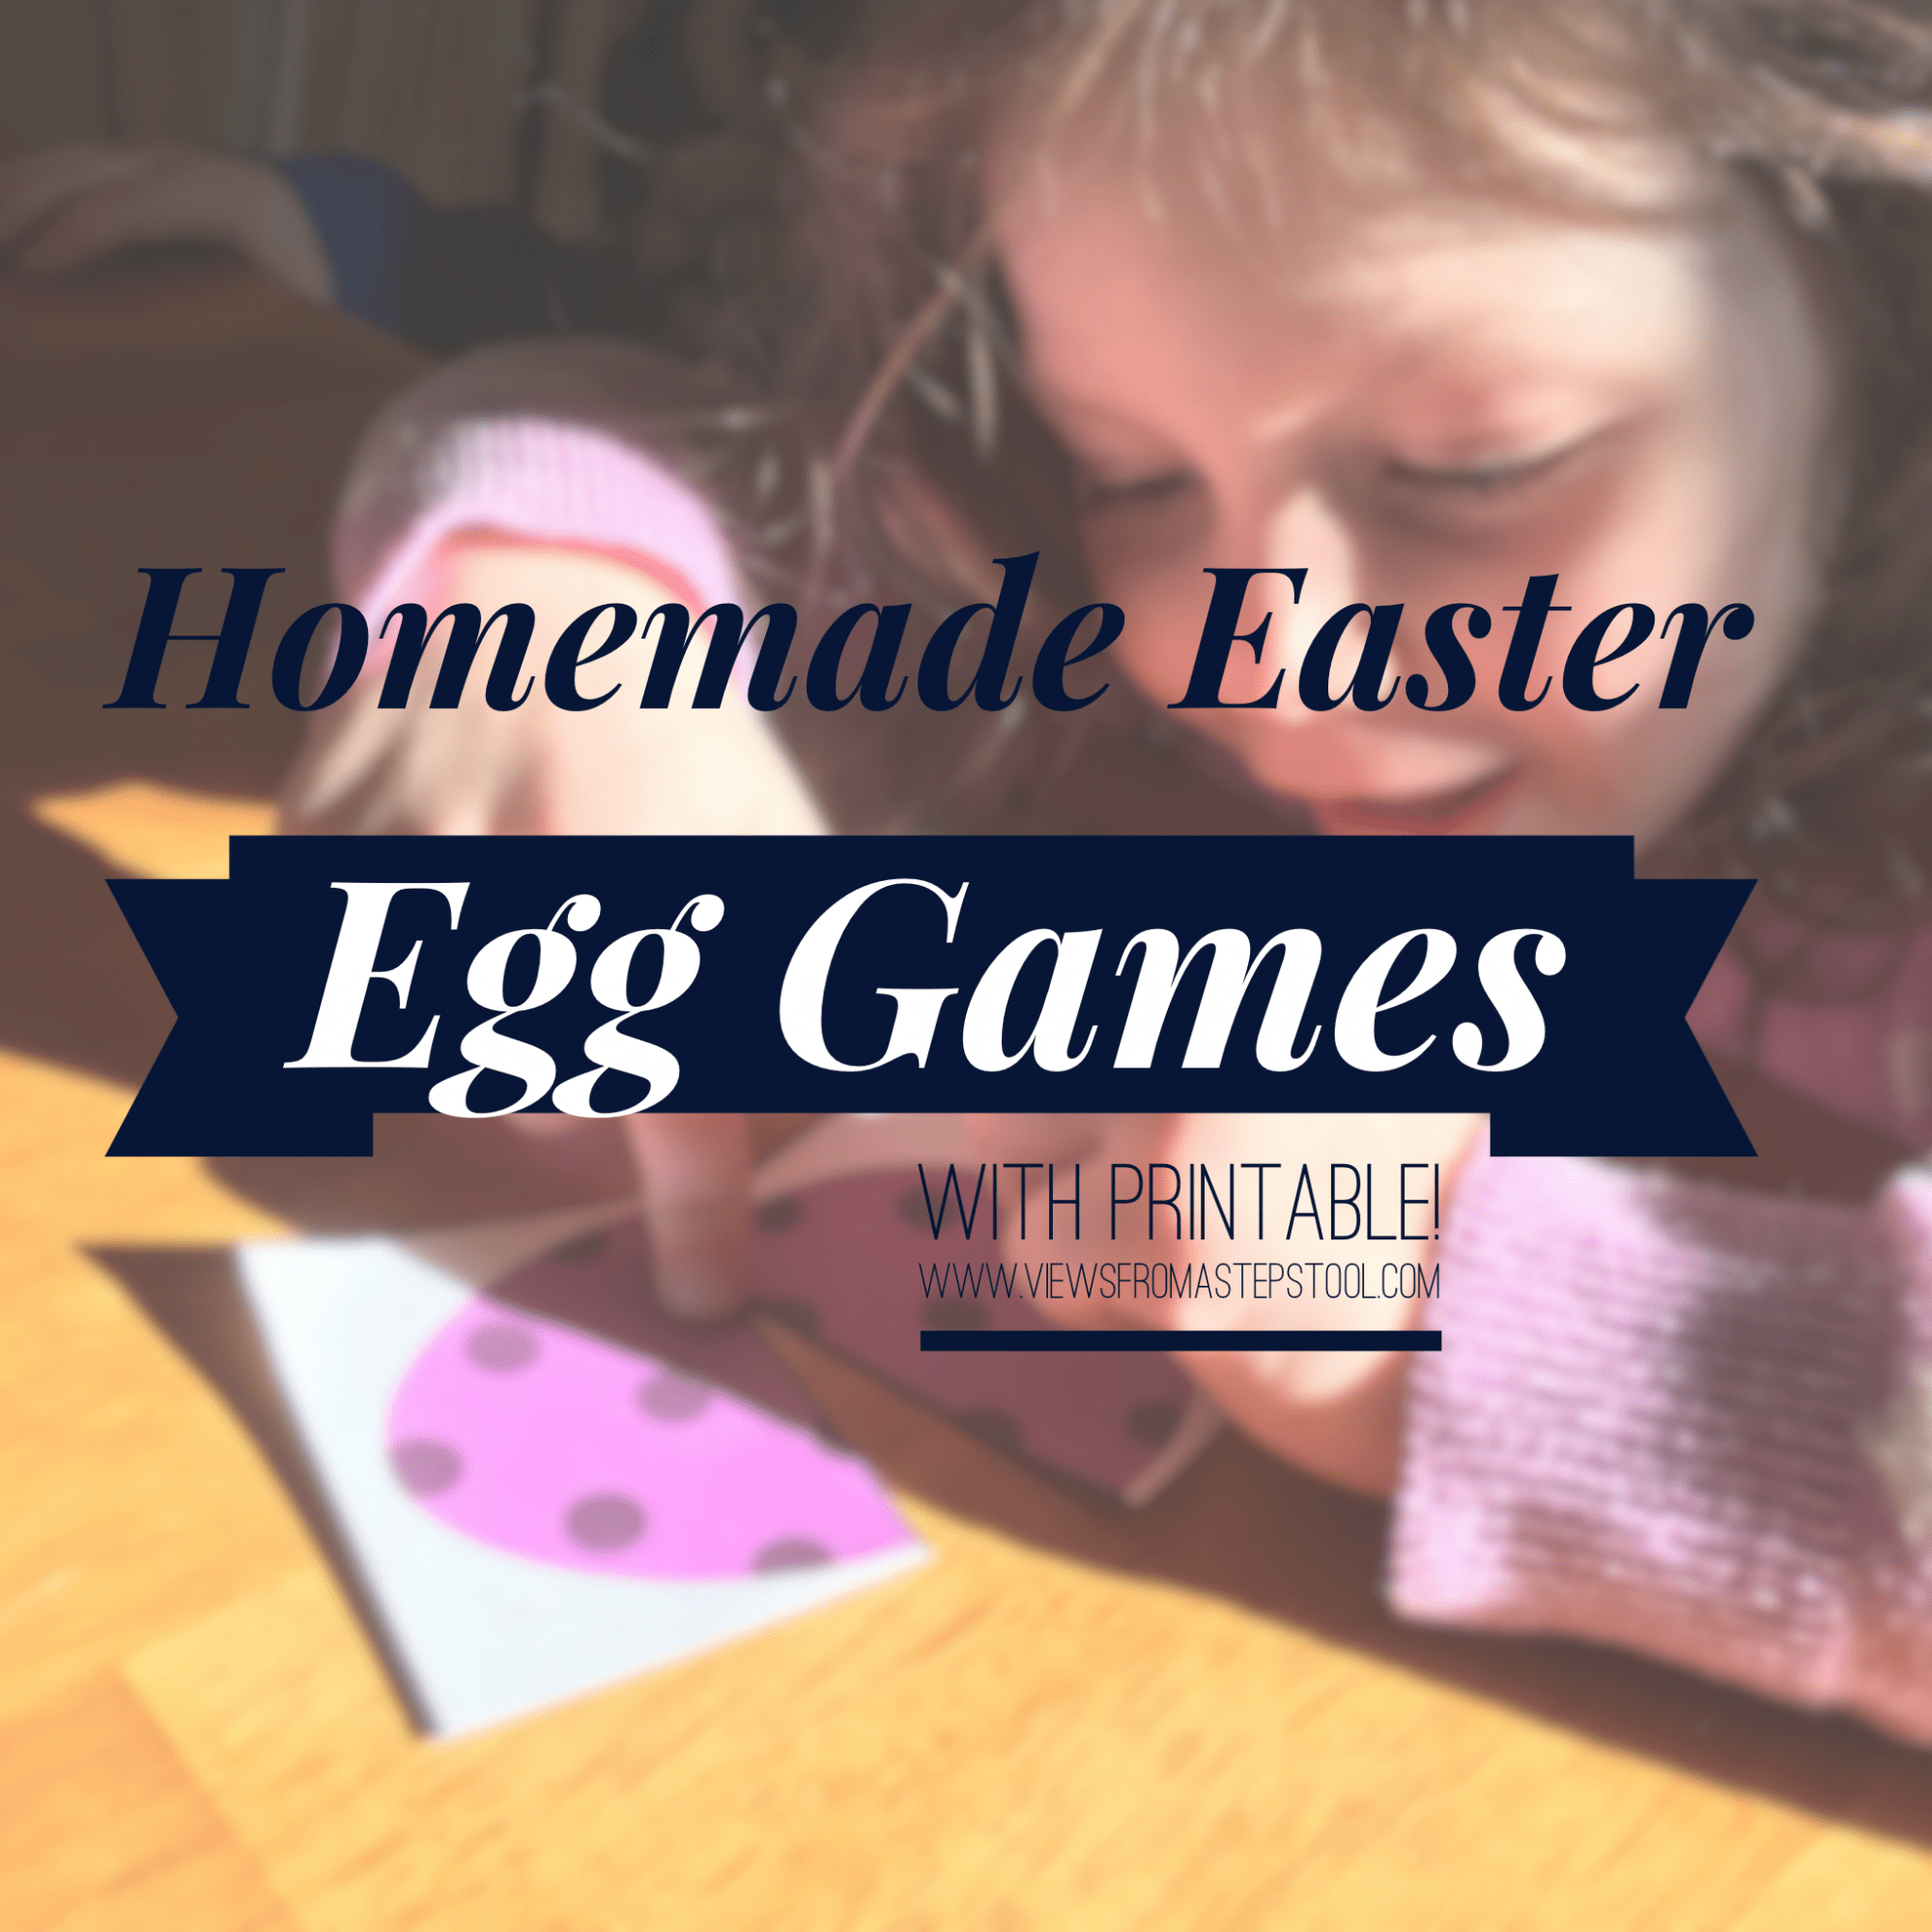 Printable Easter Egg Game for Toddlers and Preschoolers